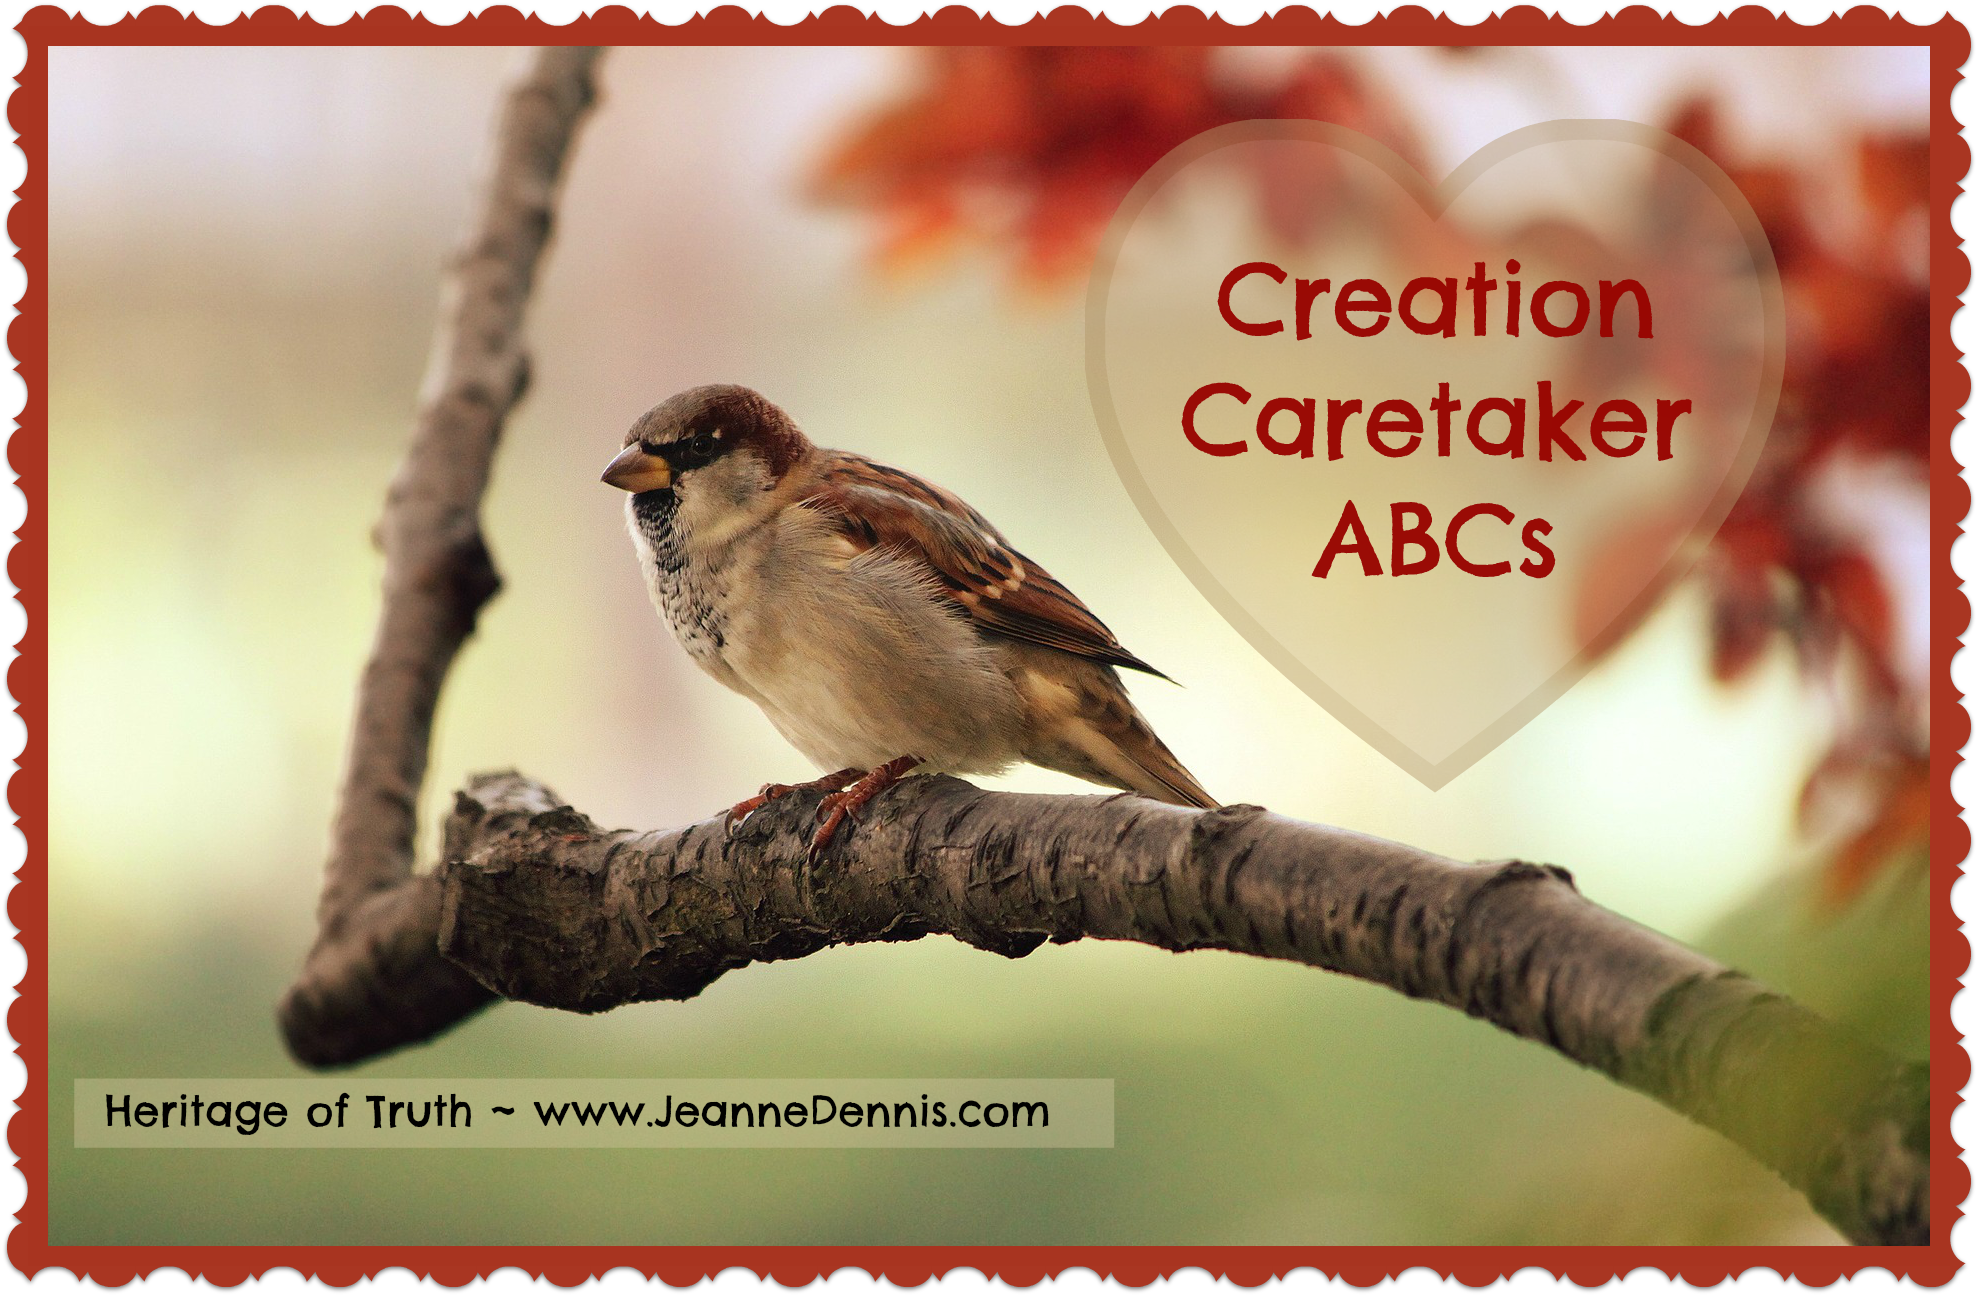 Creative Caretaker ABCs sparrow on limb